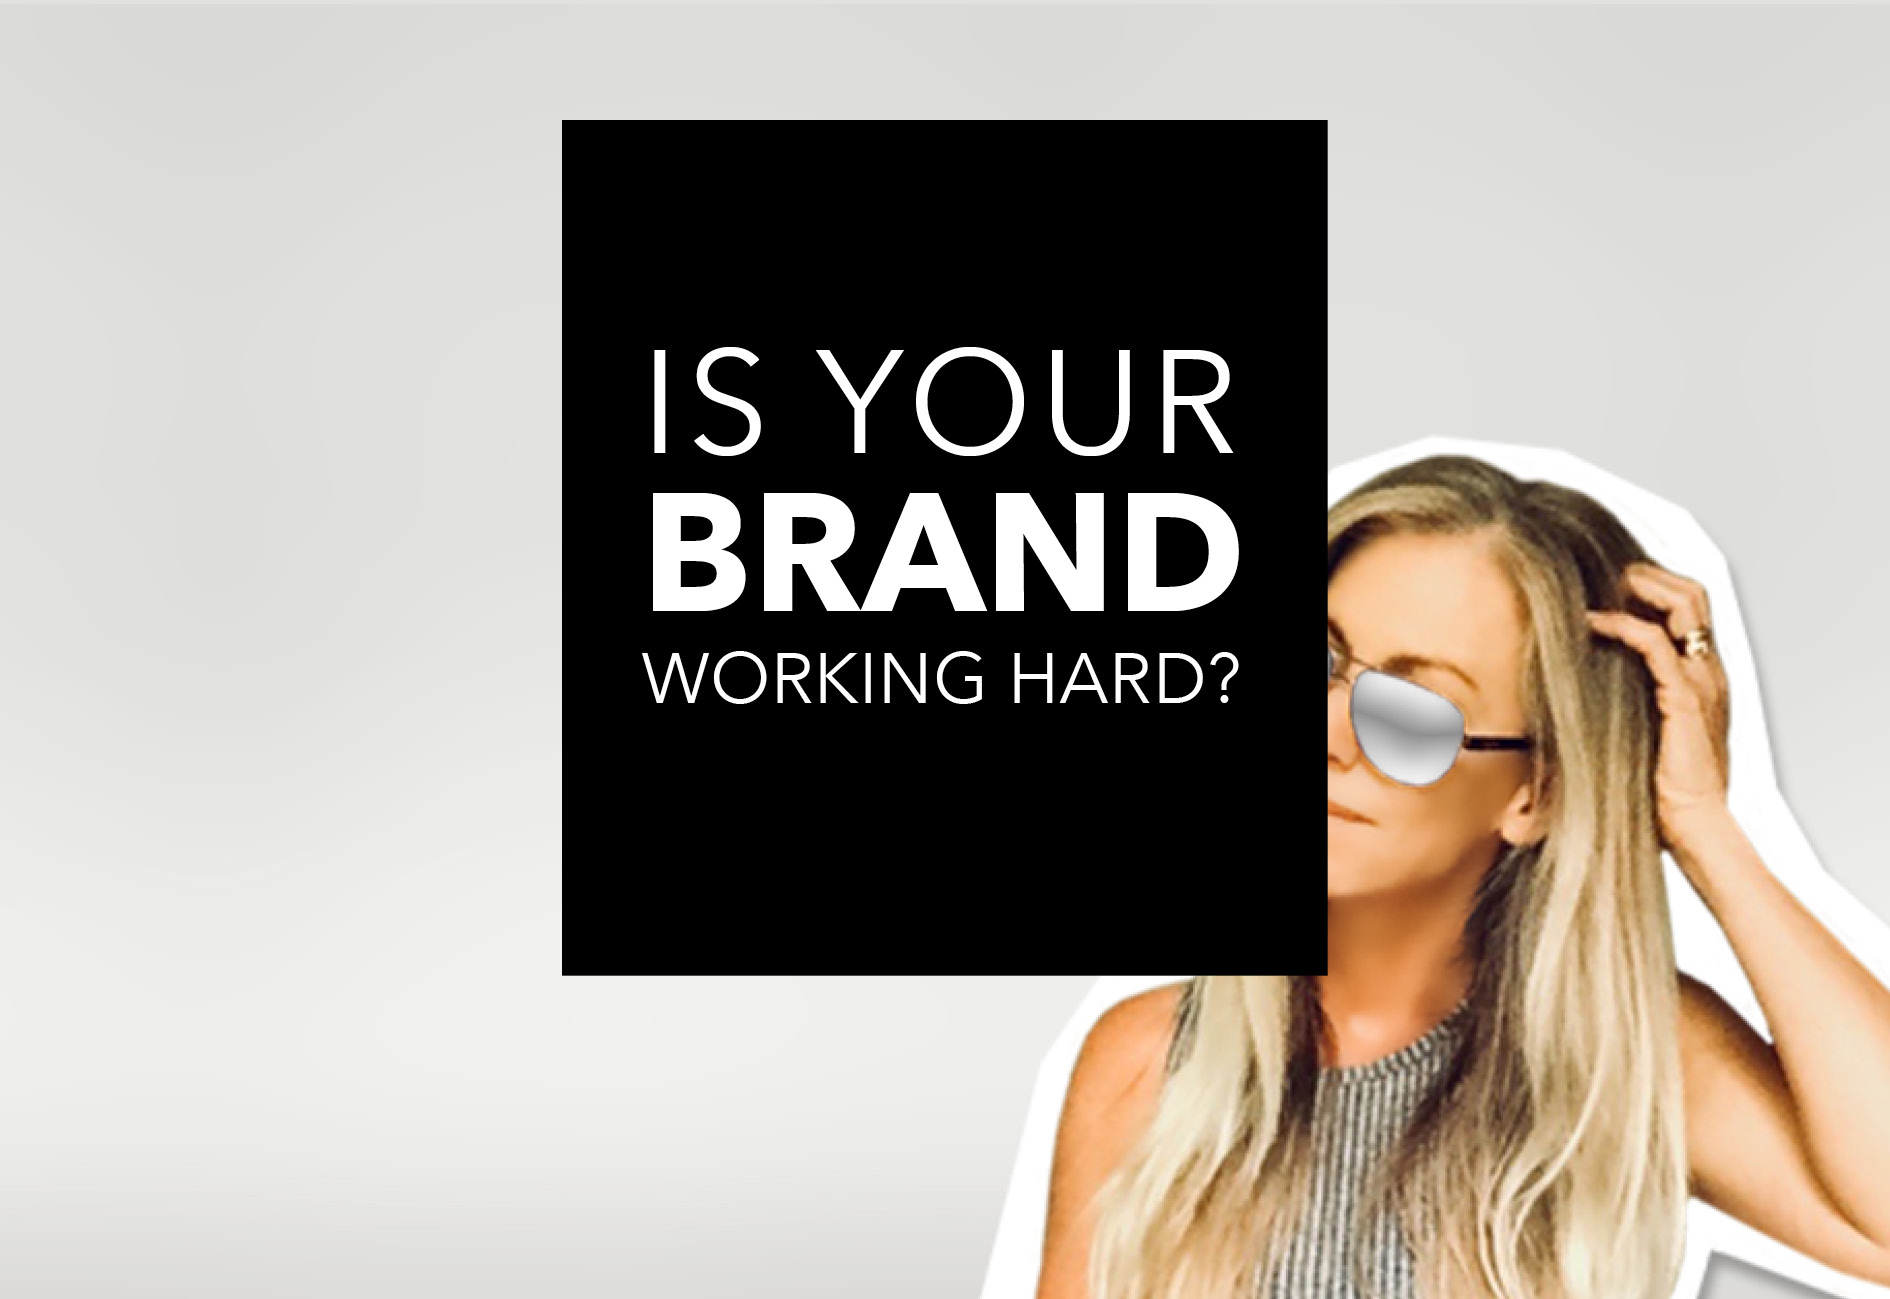 Is your brand working hard?